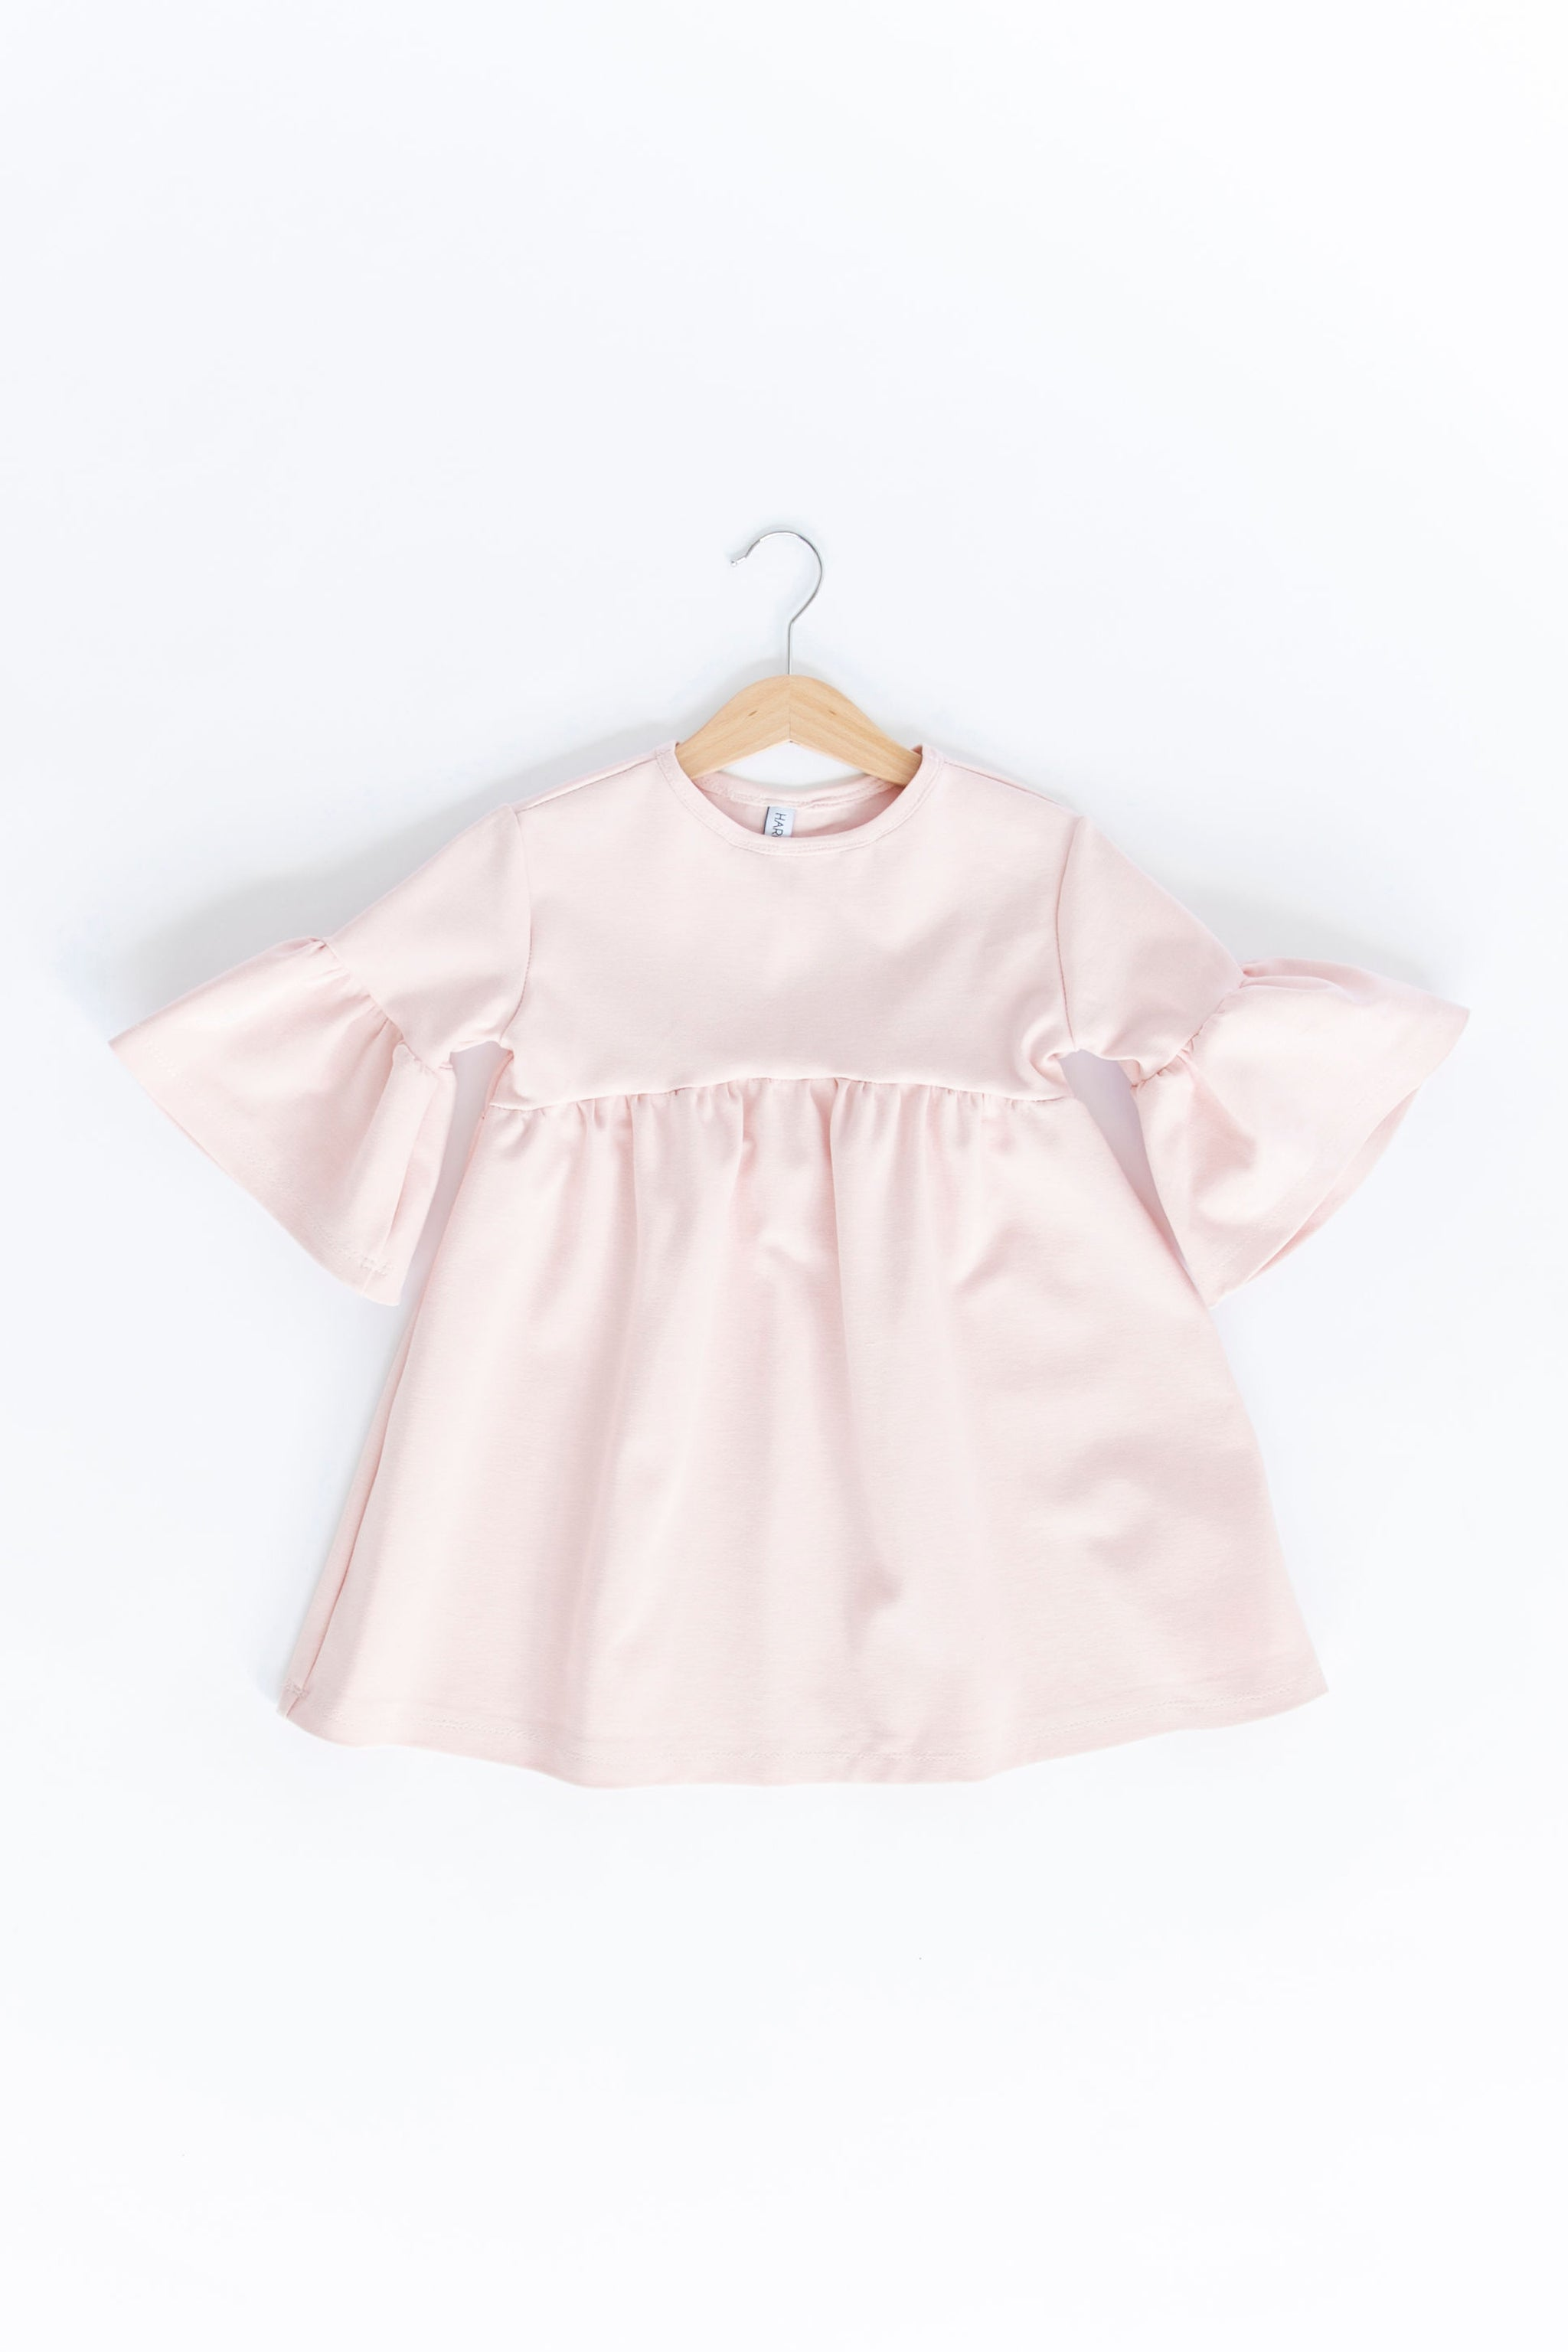 MINI - Petal - Ruffle Bell Dress